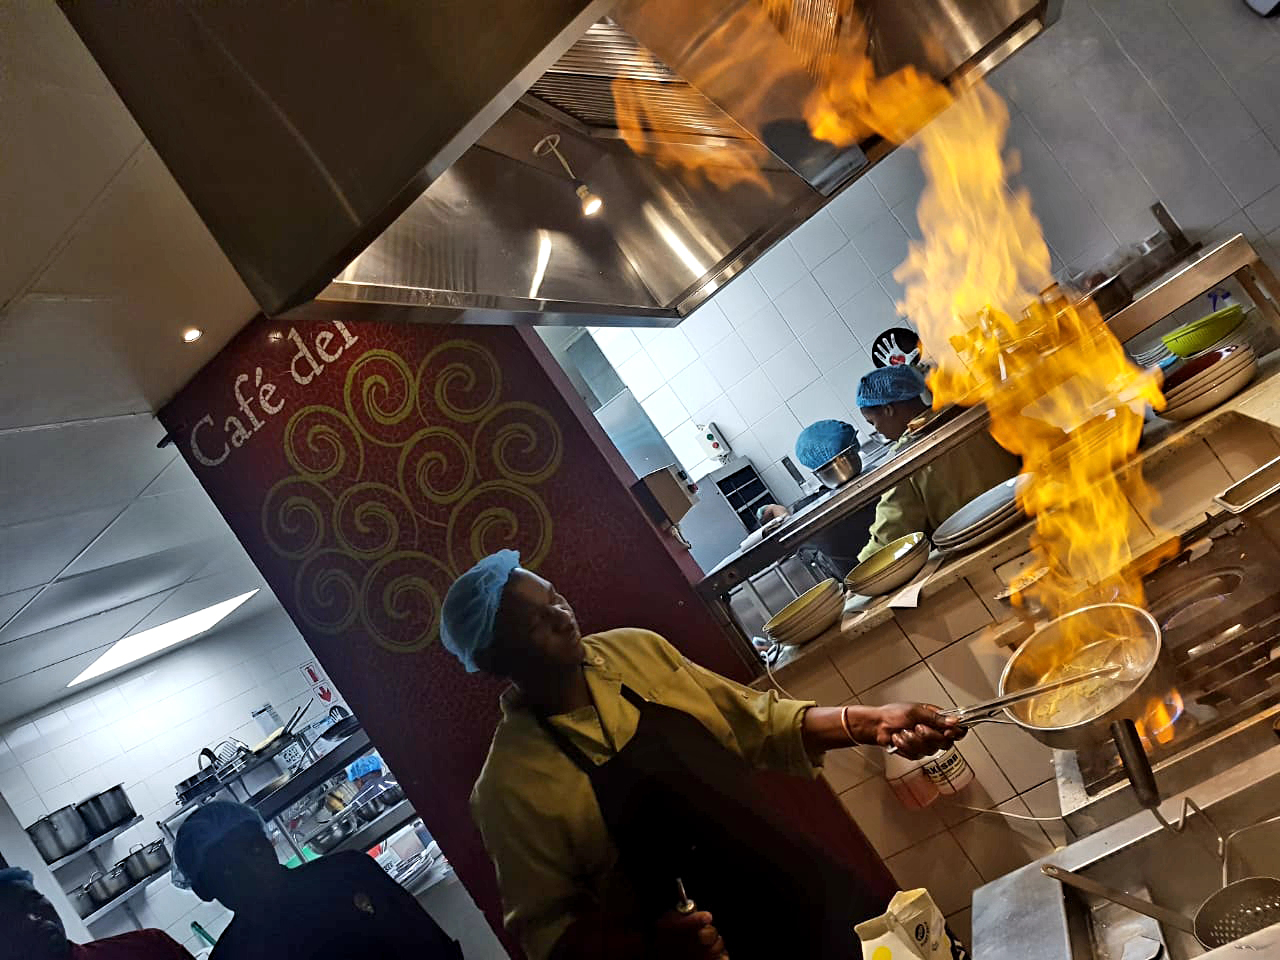 Cooking On Fire: When liquor ignites flavour